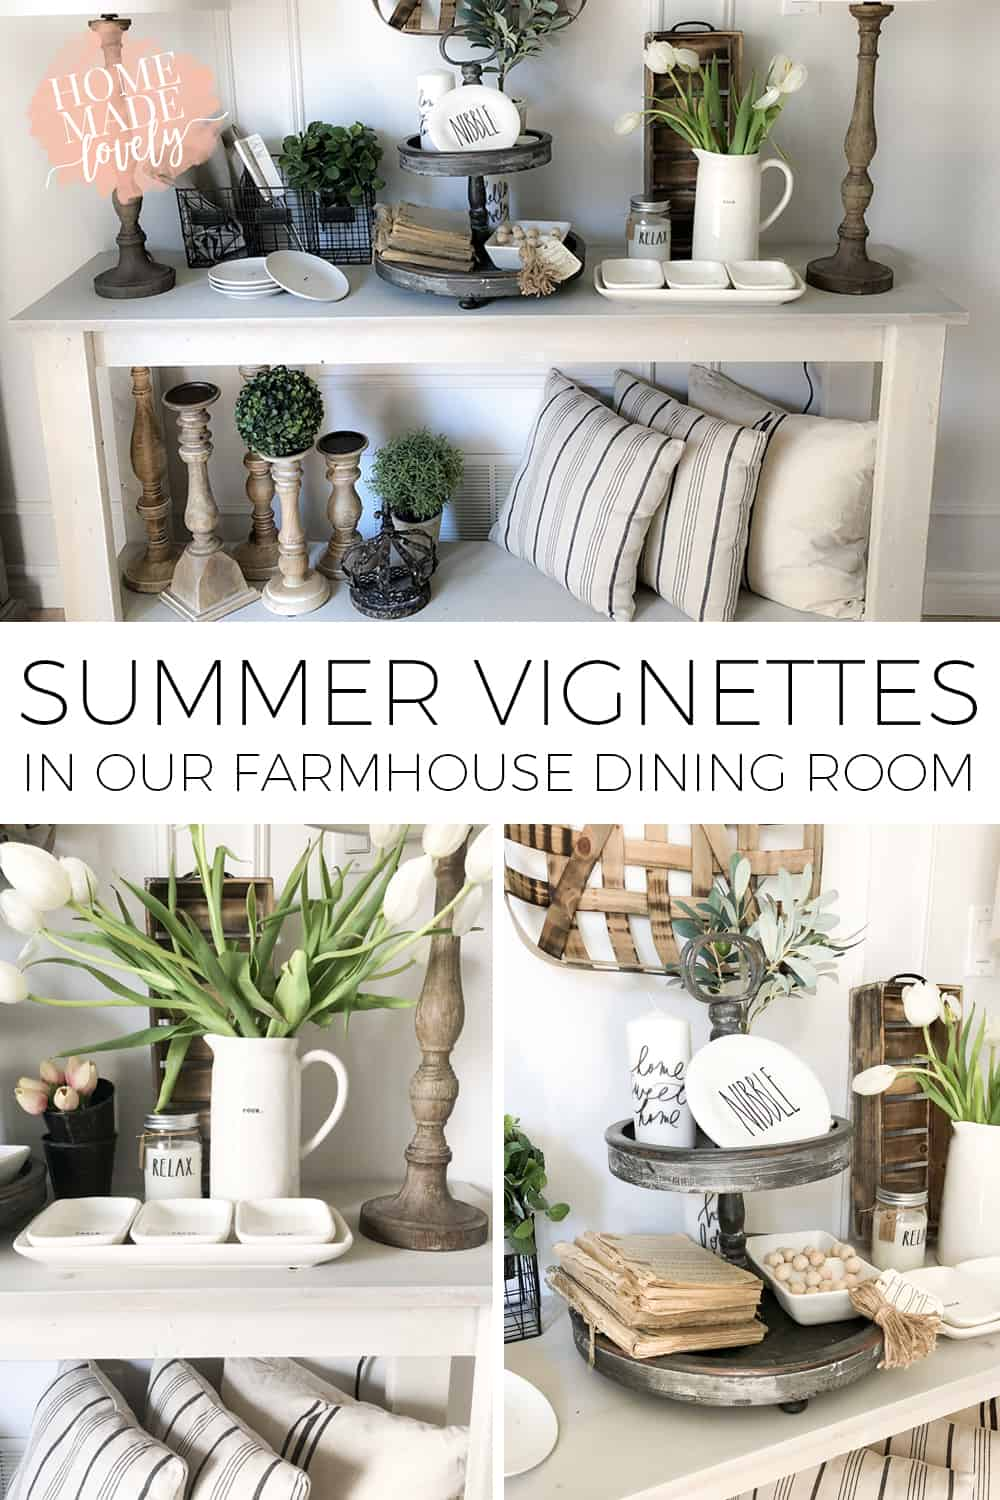 Summer Vignettes in Our Farmhouse Dining Room